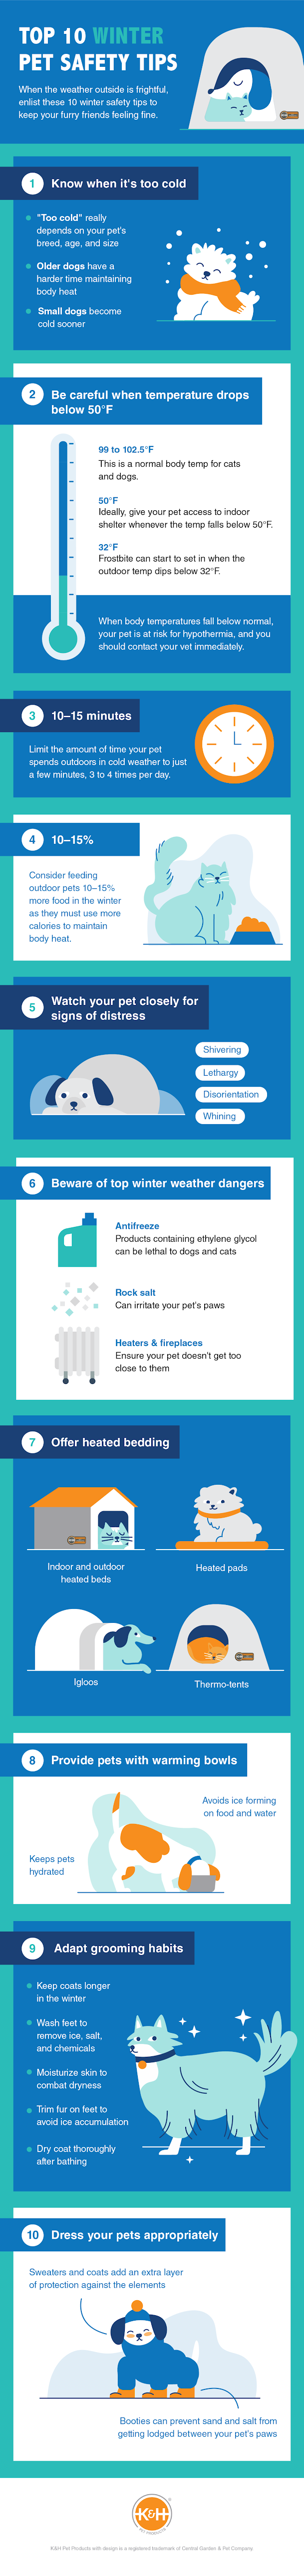 Top 10 Winter Pet Safety Tips #infographic #pets & Animal #Winter #Pet Safety Tips #Pets